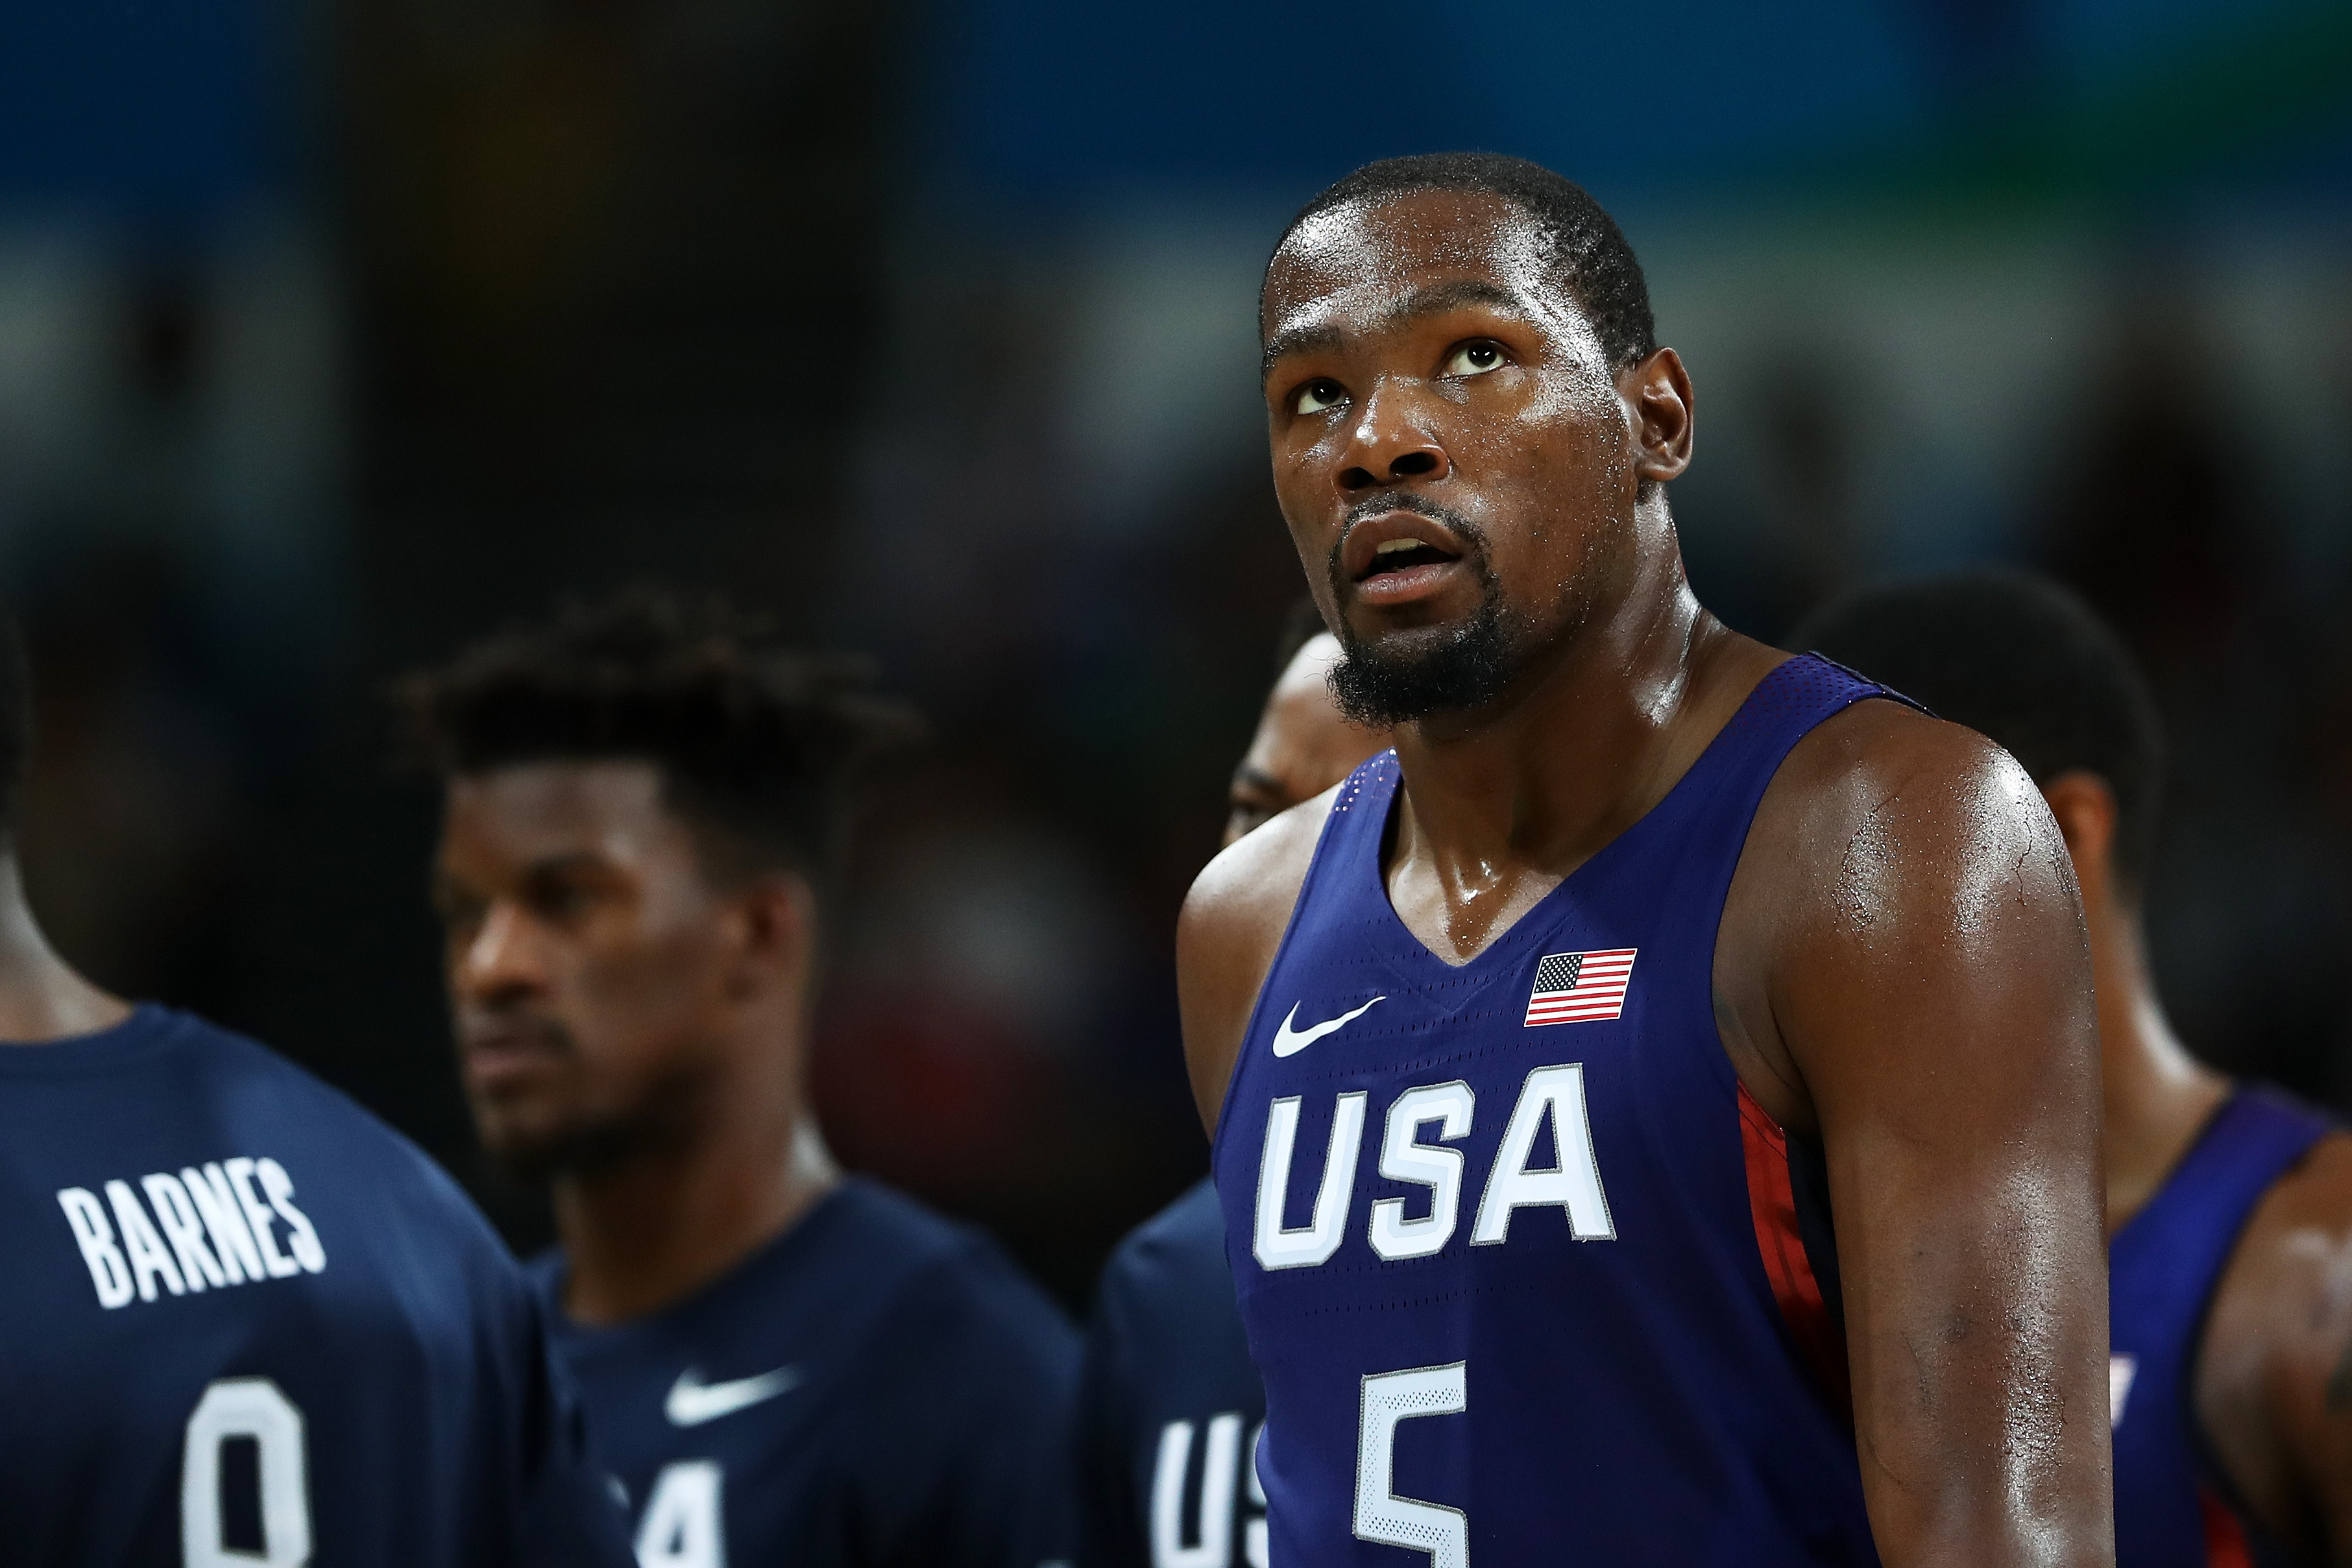 Kevin Durant playing for Team USA at the 2016 Rio Games